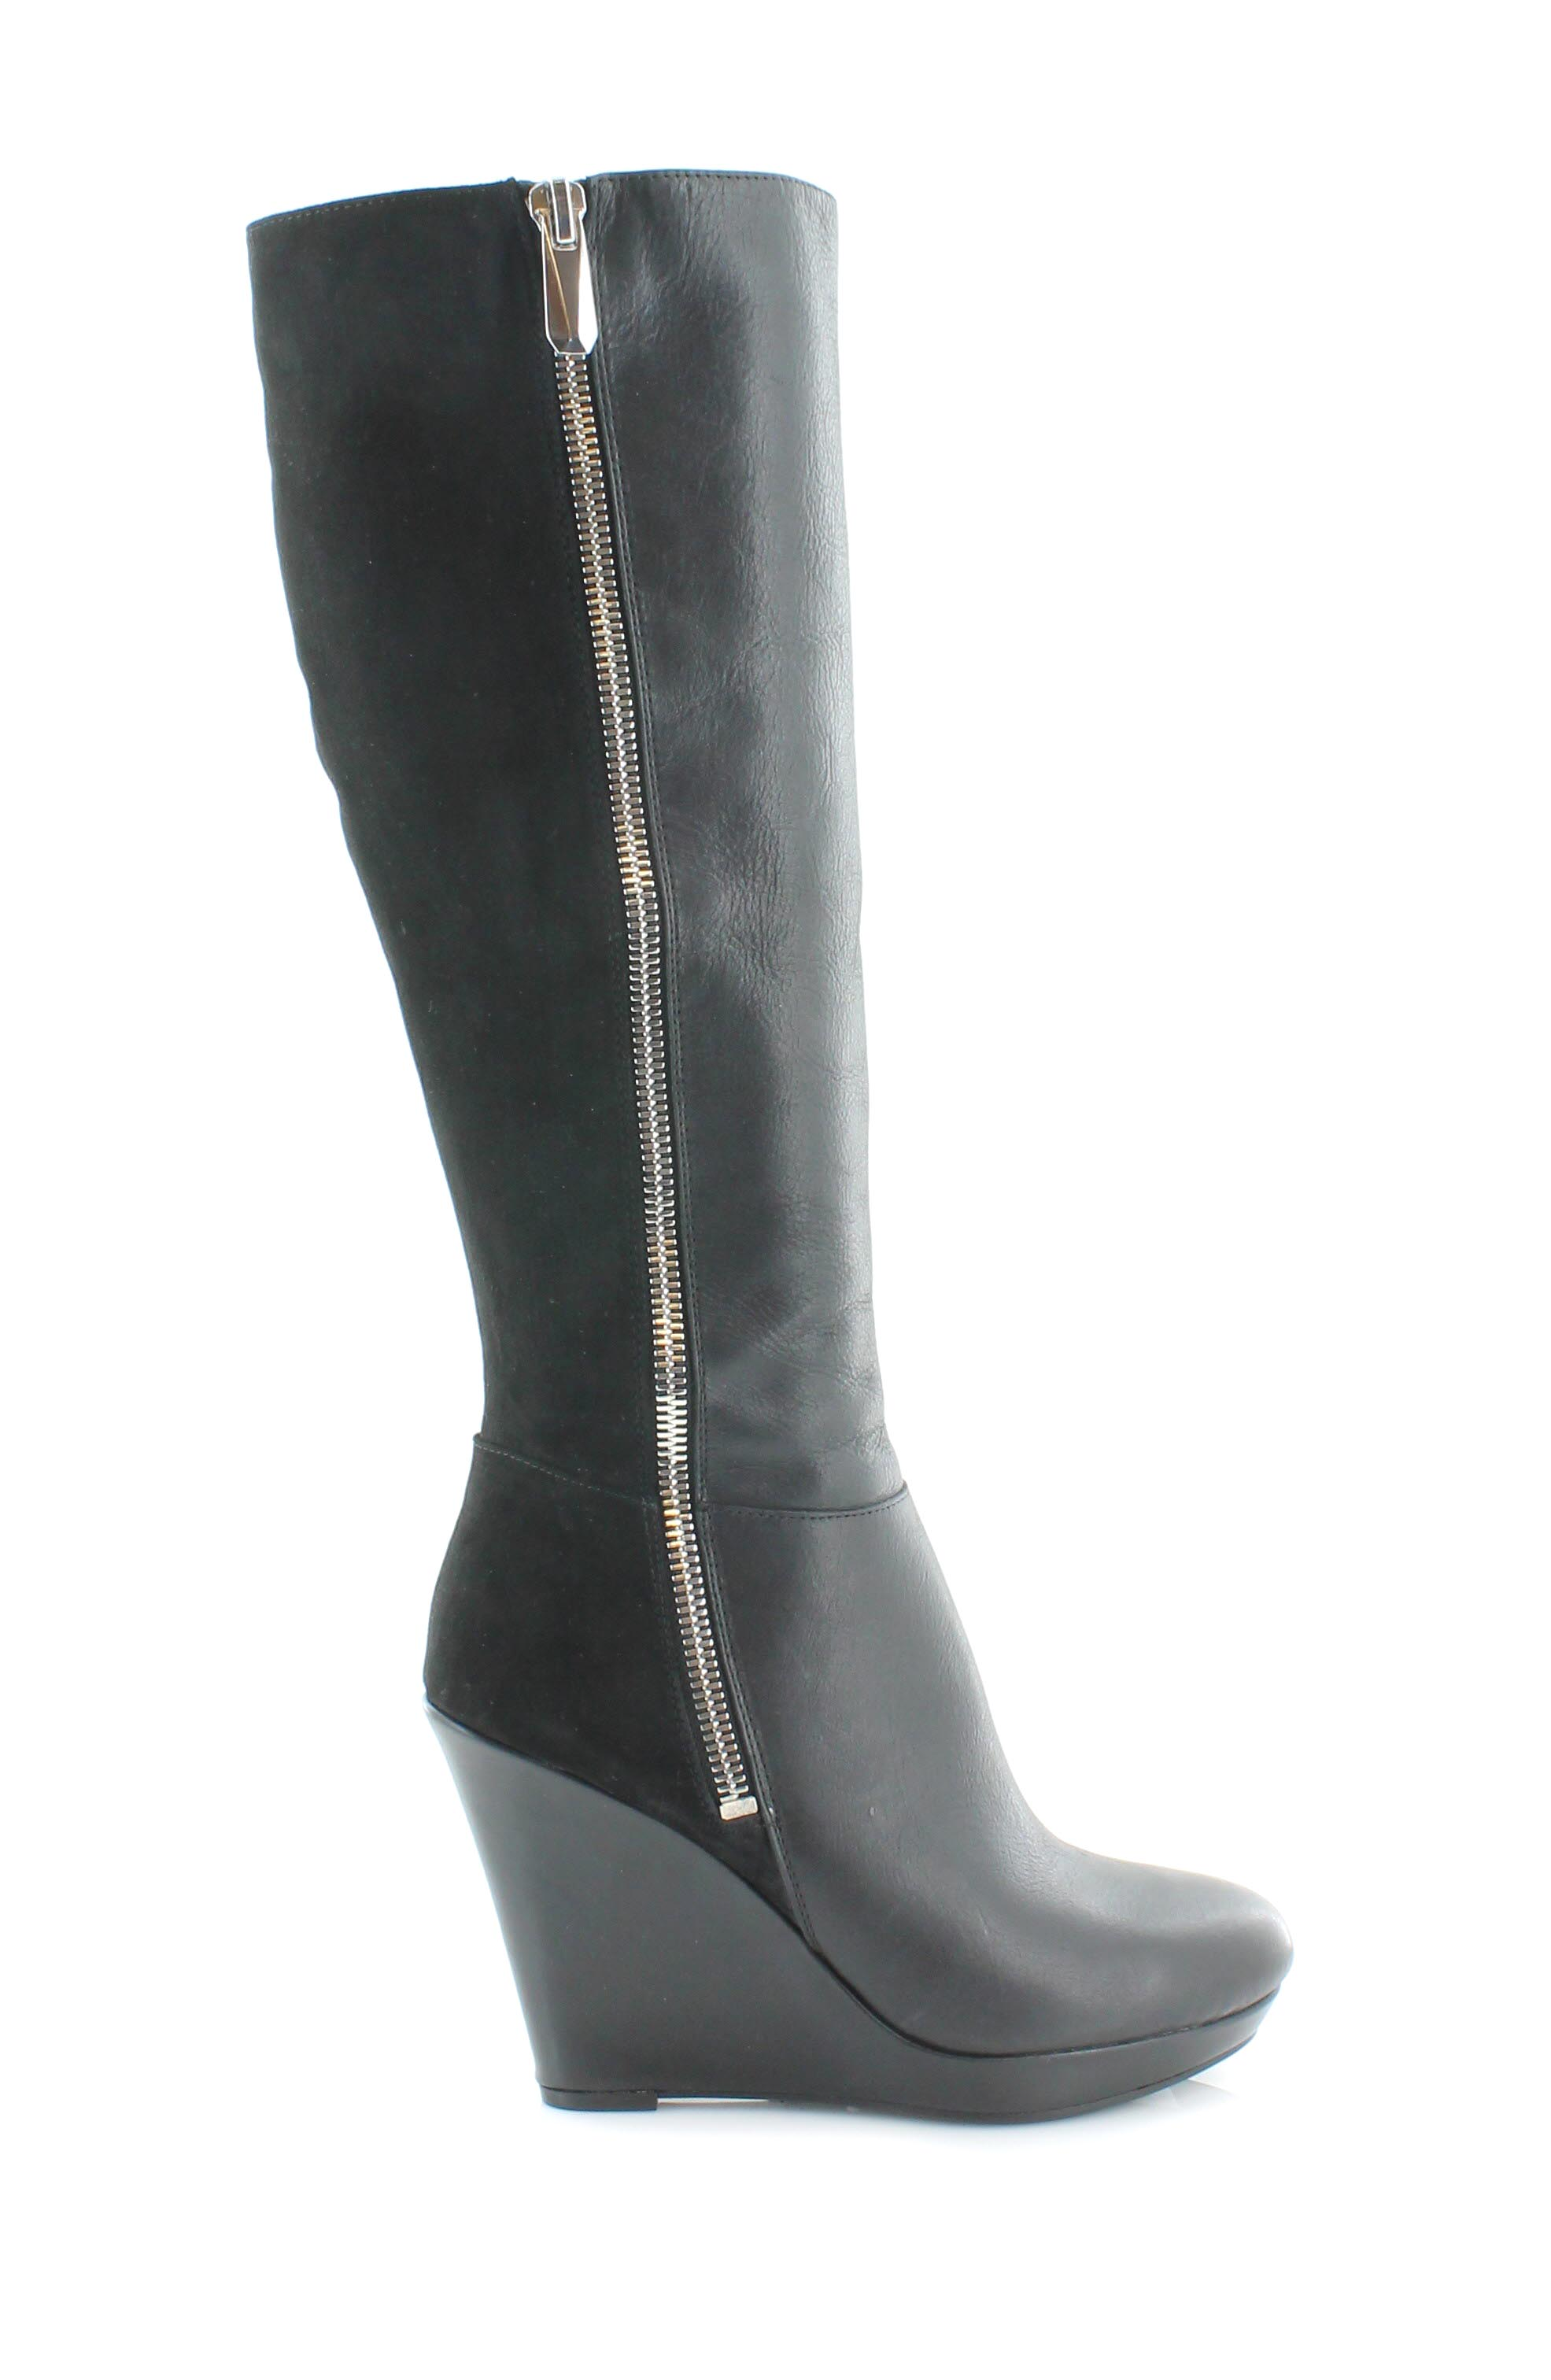 Bar III Tristan Women's Boots Economical, stylish, and eye-catching shoes